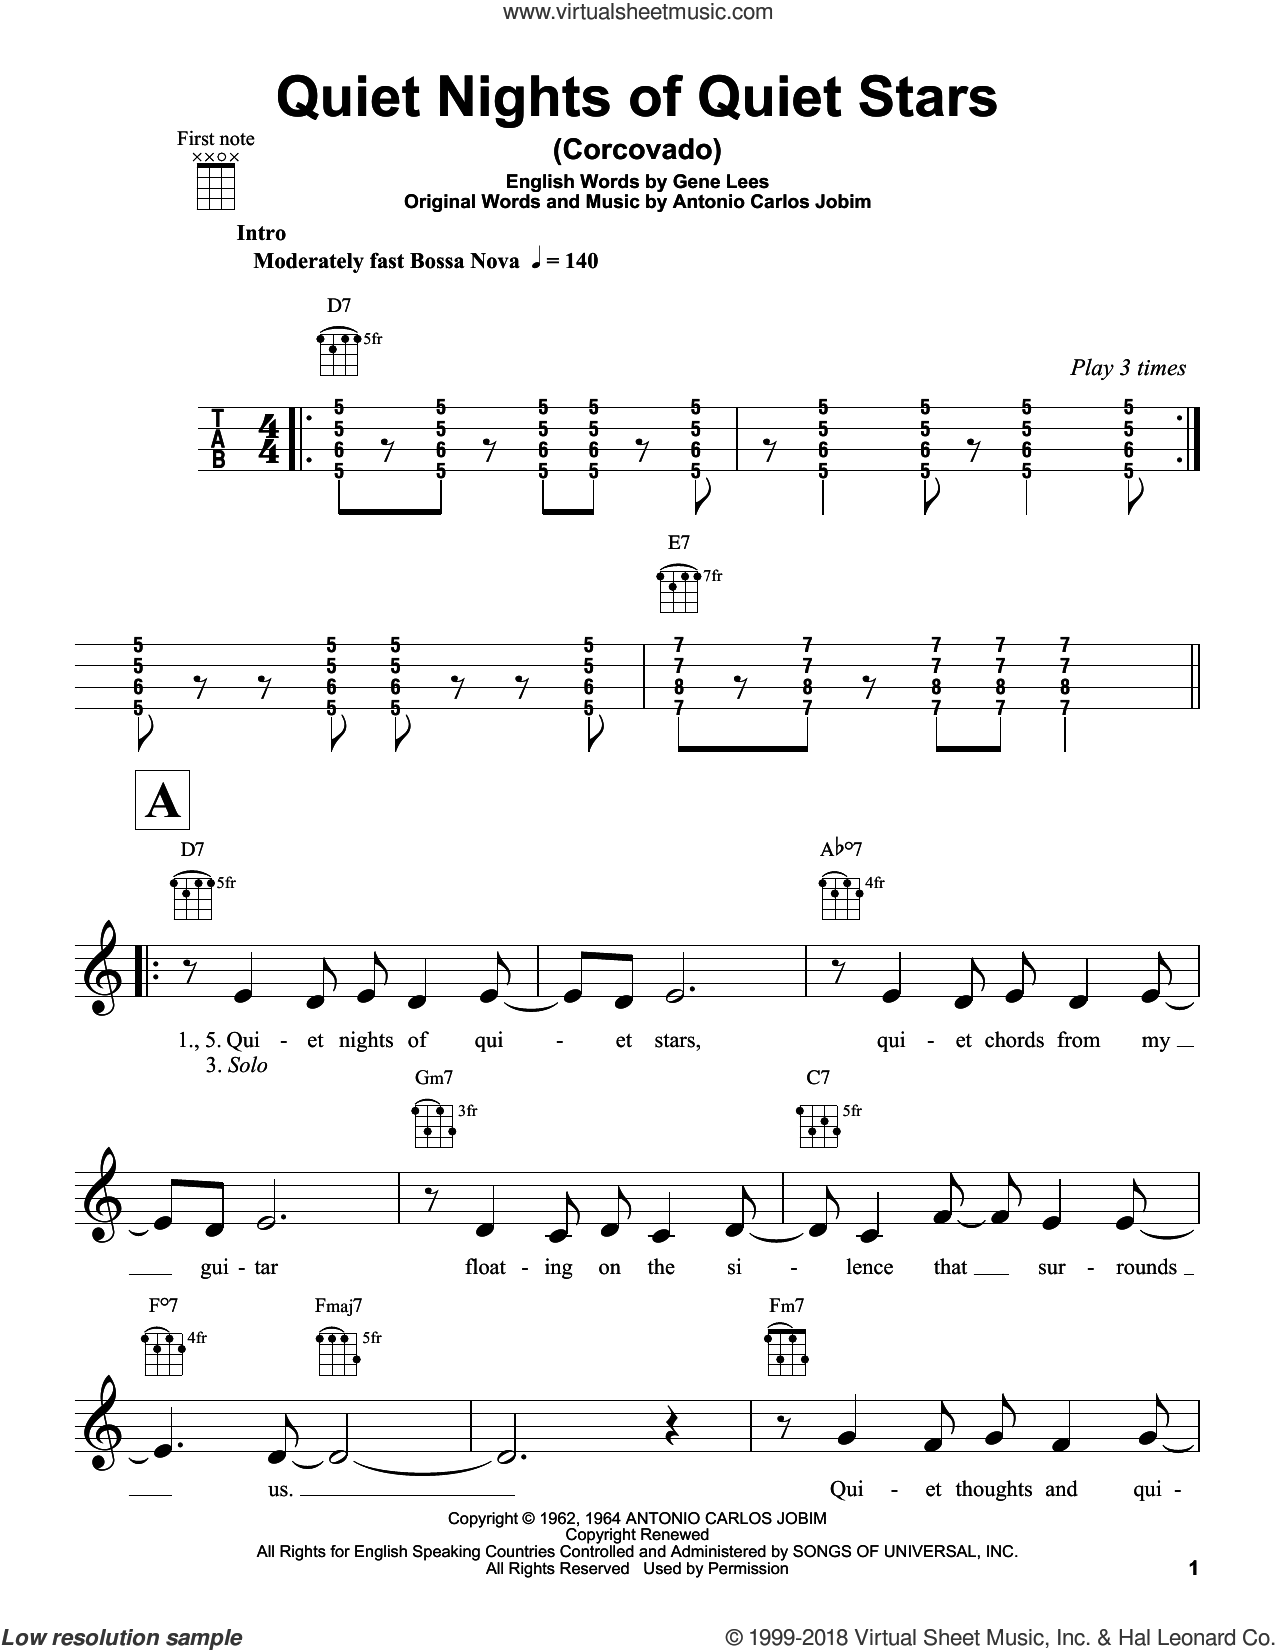 Quiet Nights Of Quiet Stars (Corcovado) sheet music for ukulele by Antonio Carlos Jobim, Andy Williams and Eugene John Lees, intermediate skill level